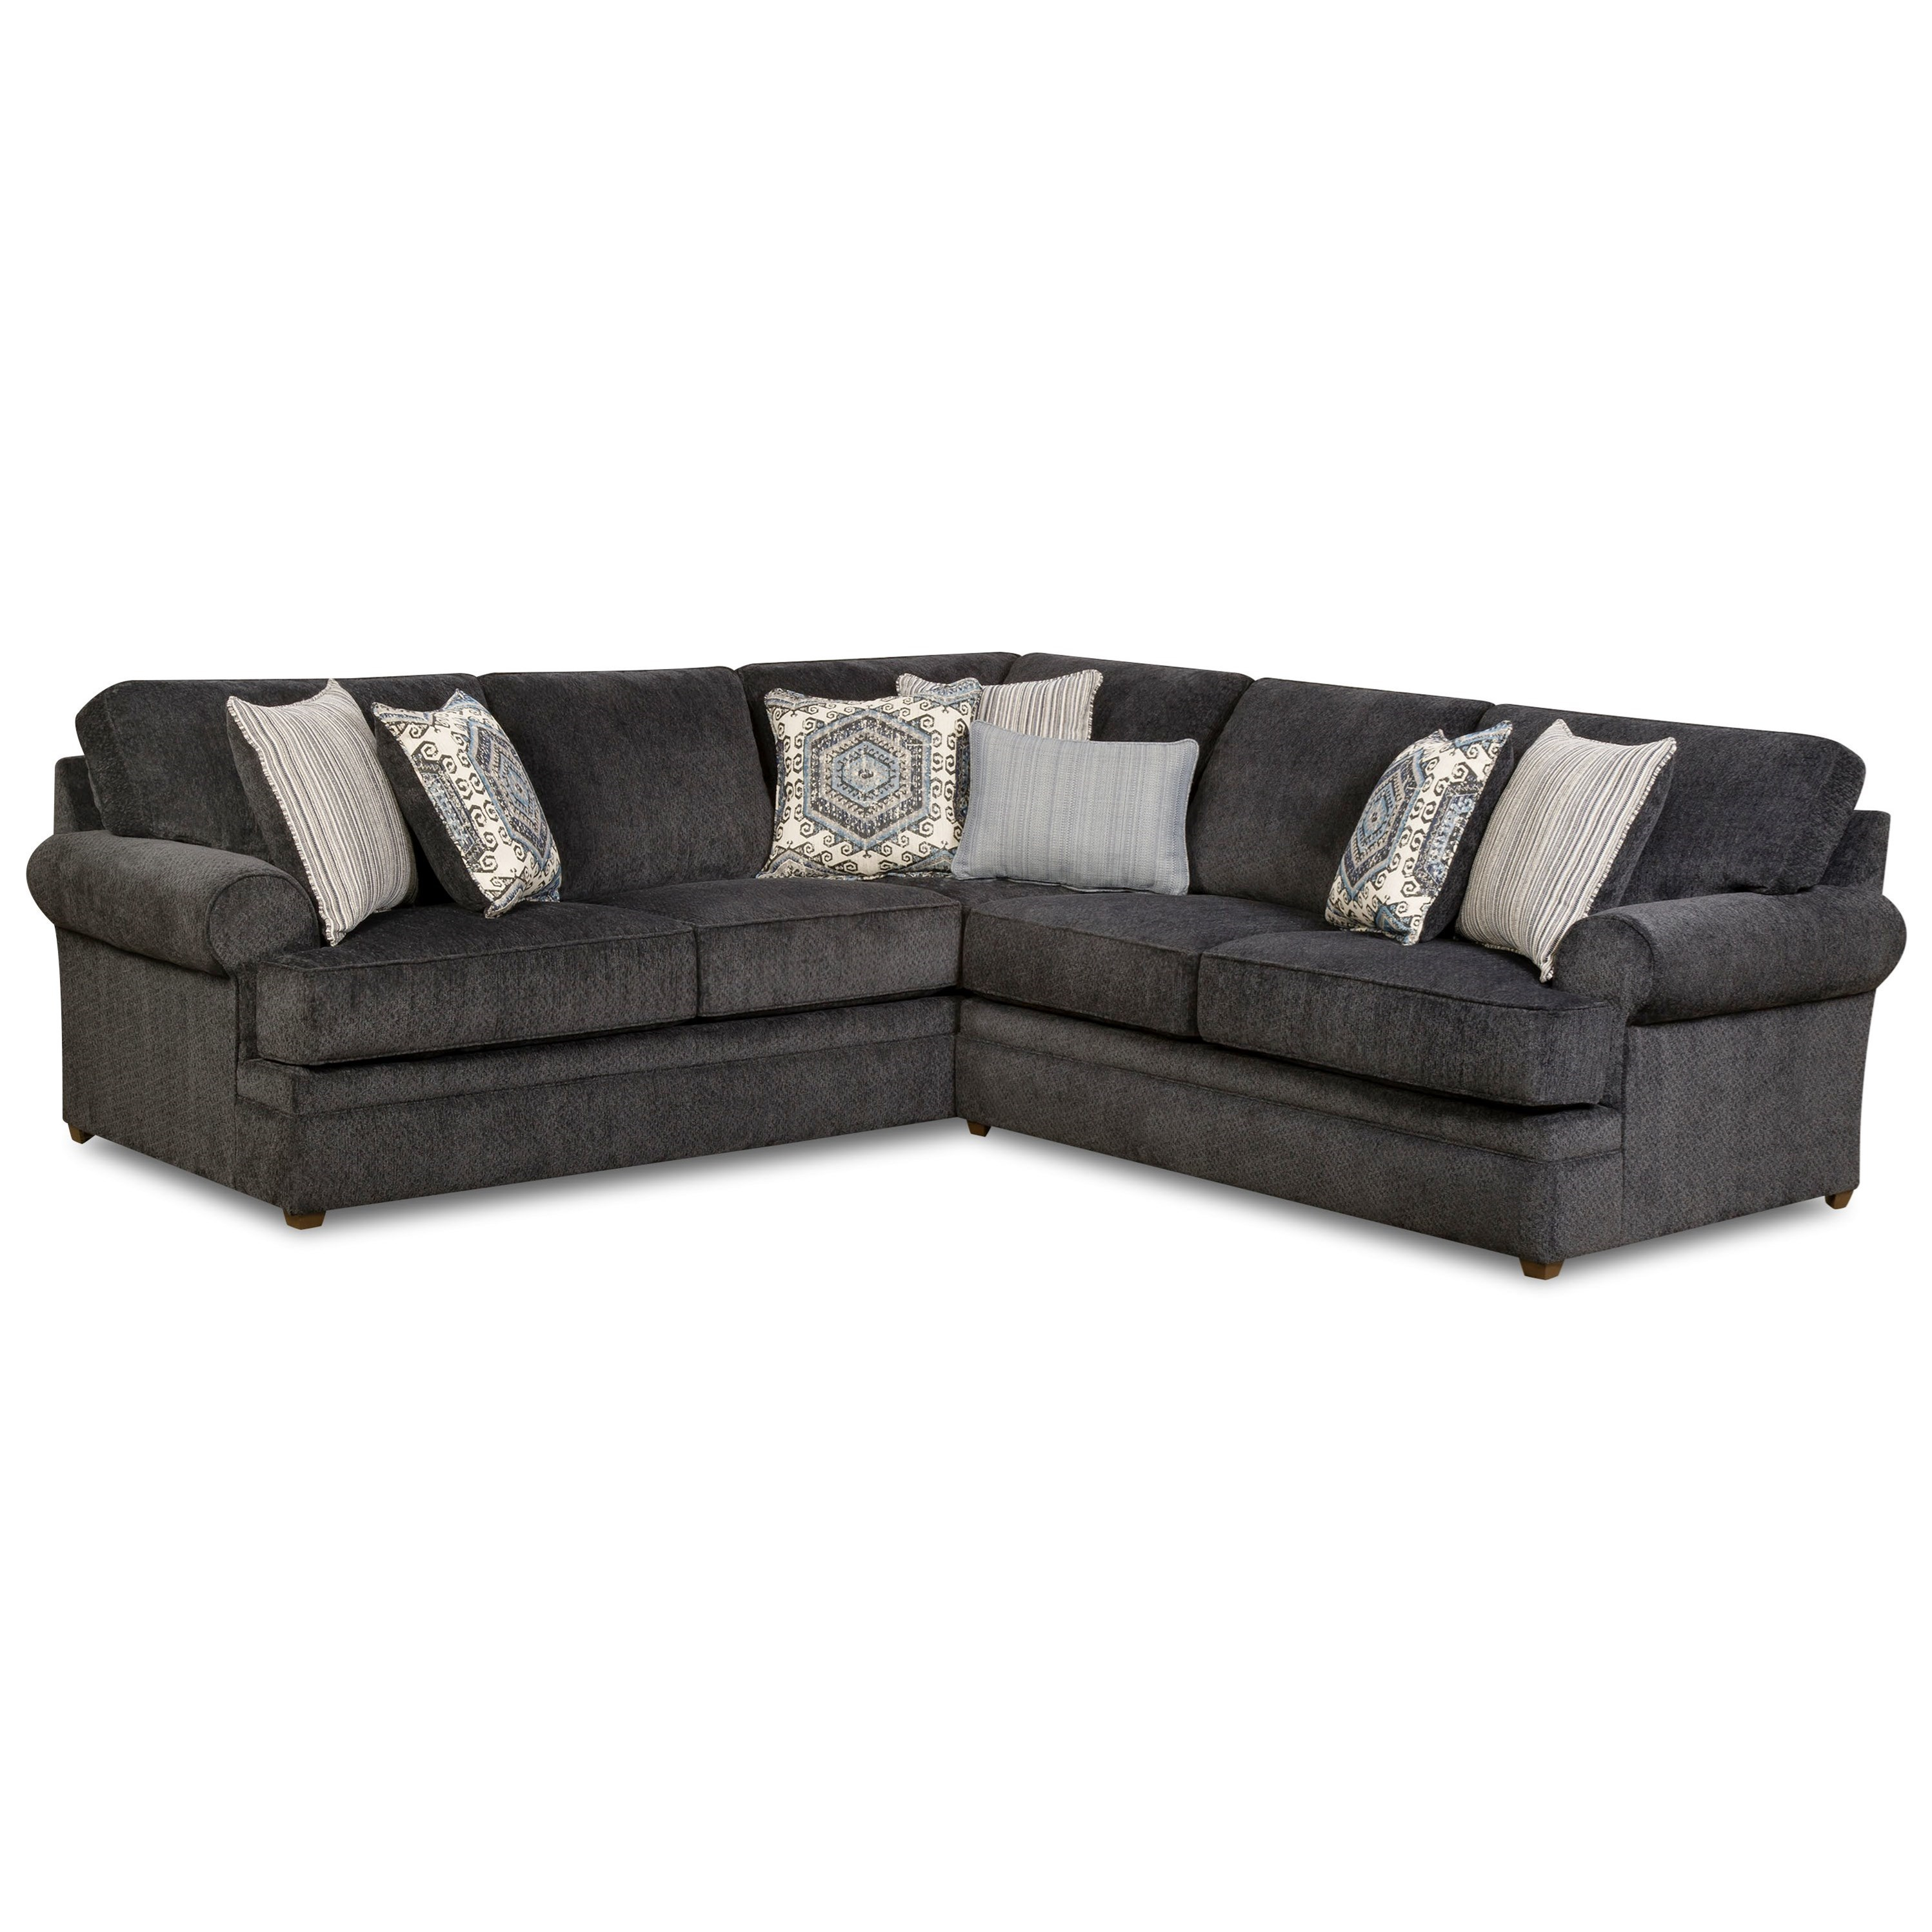 Simmons Upholstery 8530 BRTransitional Sectional Sofa ...